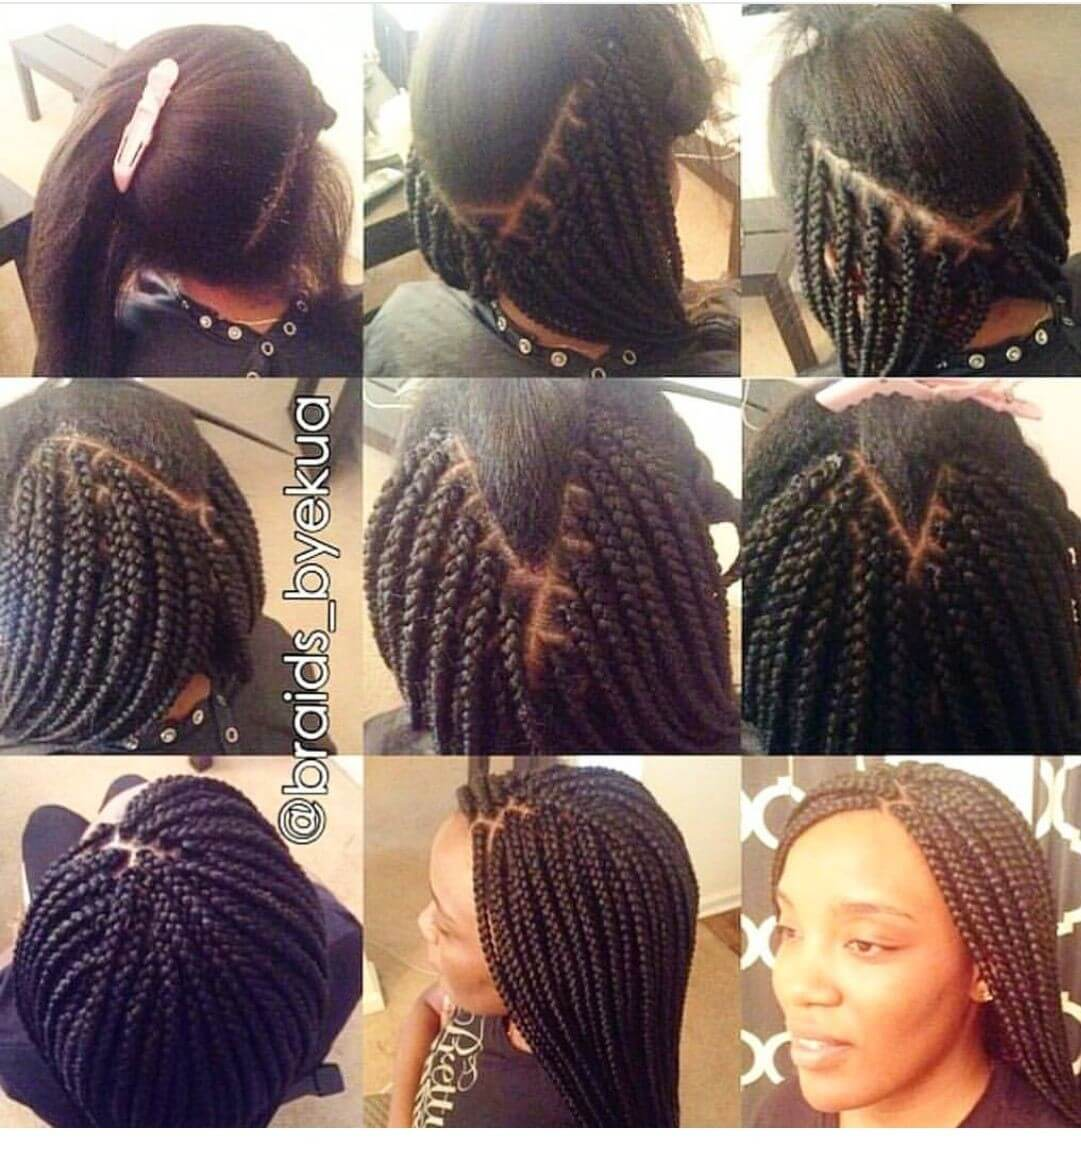 nine images from @braids_byekua instructing how to box braid your own hair.